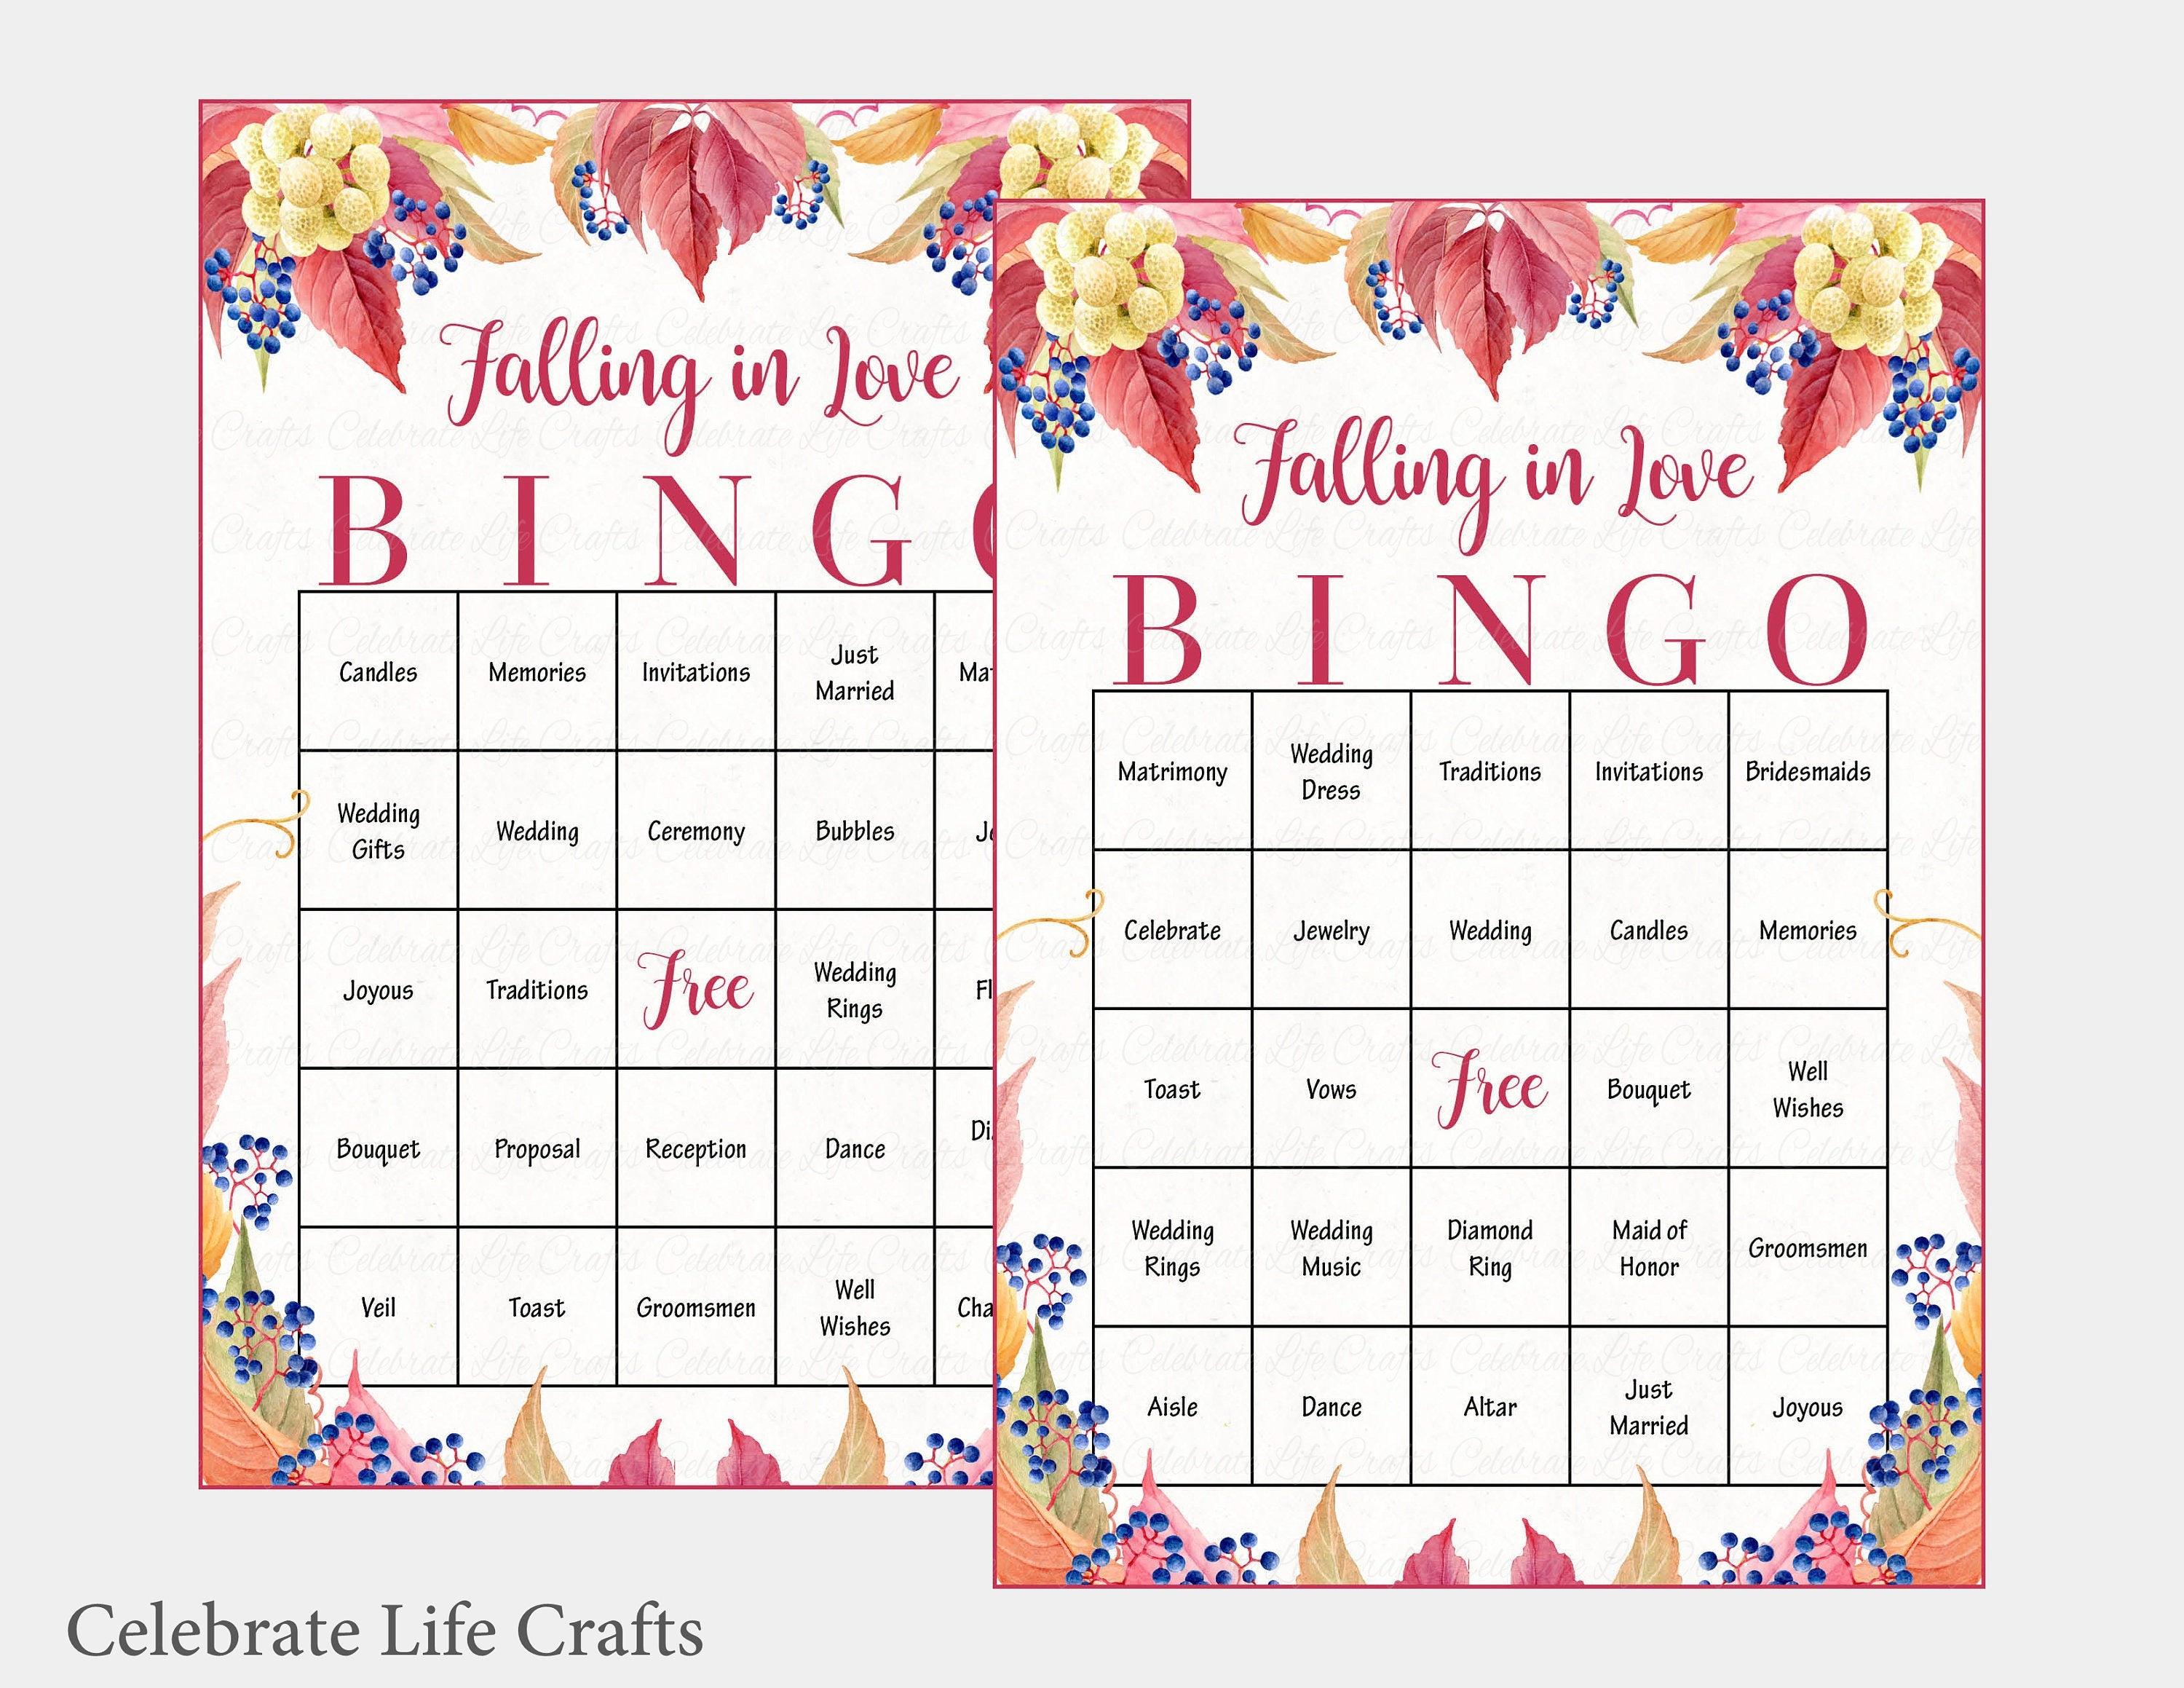 100 Falling In Love Wedding Bingo Cards Fall Bridal Shower | Etsy - Free Printable Bingo Cards 1 100